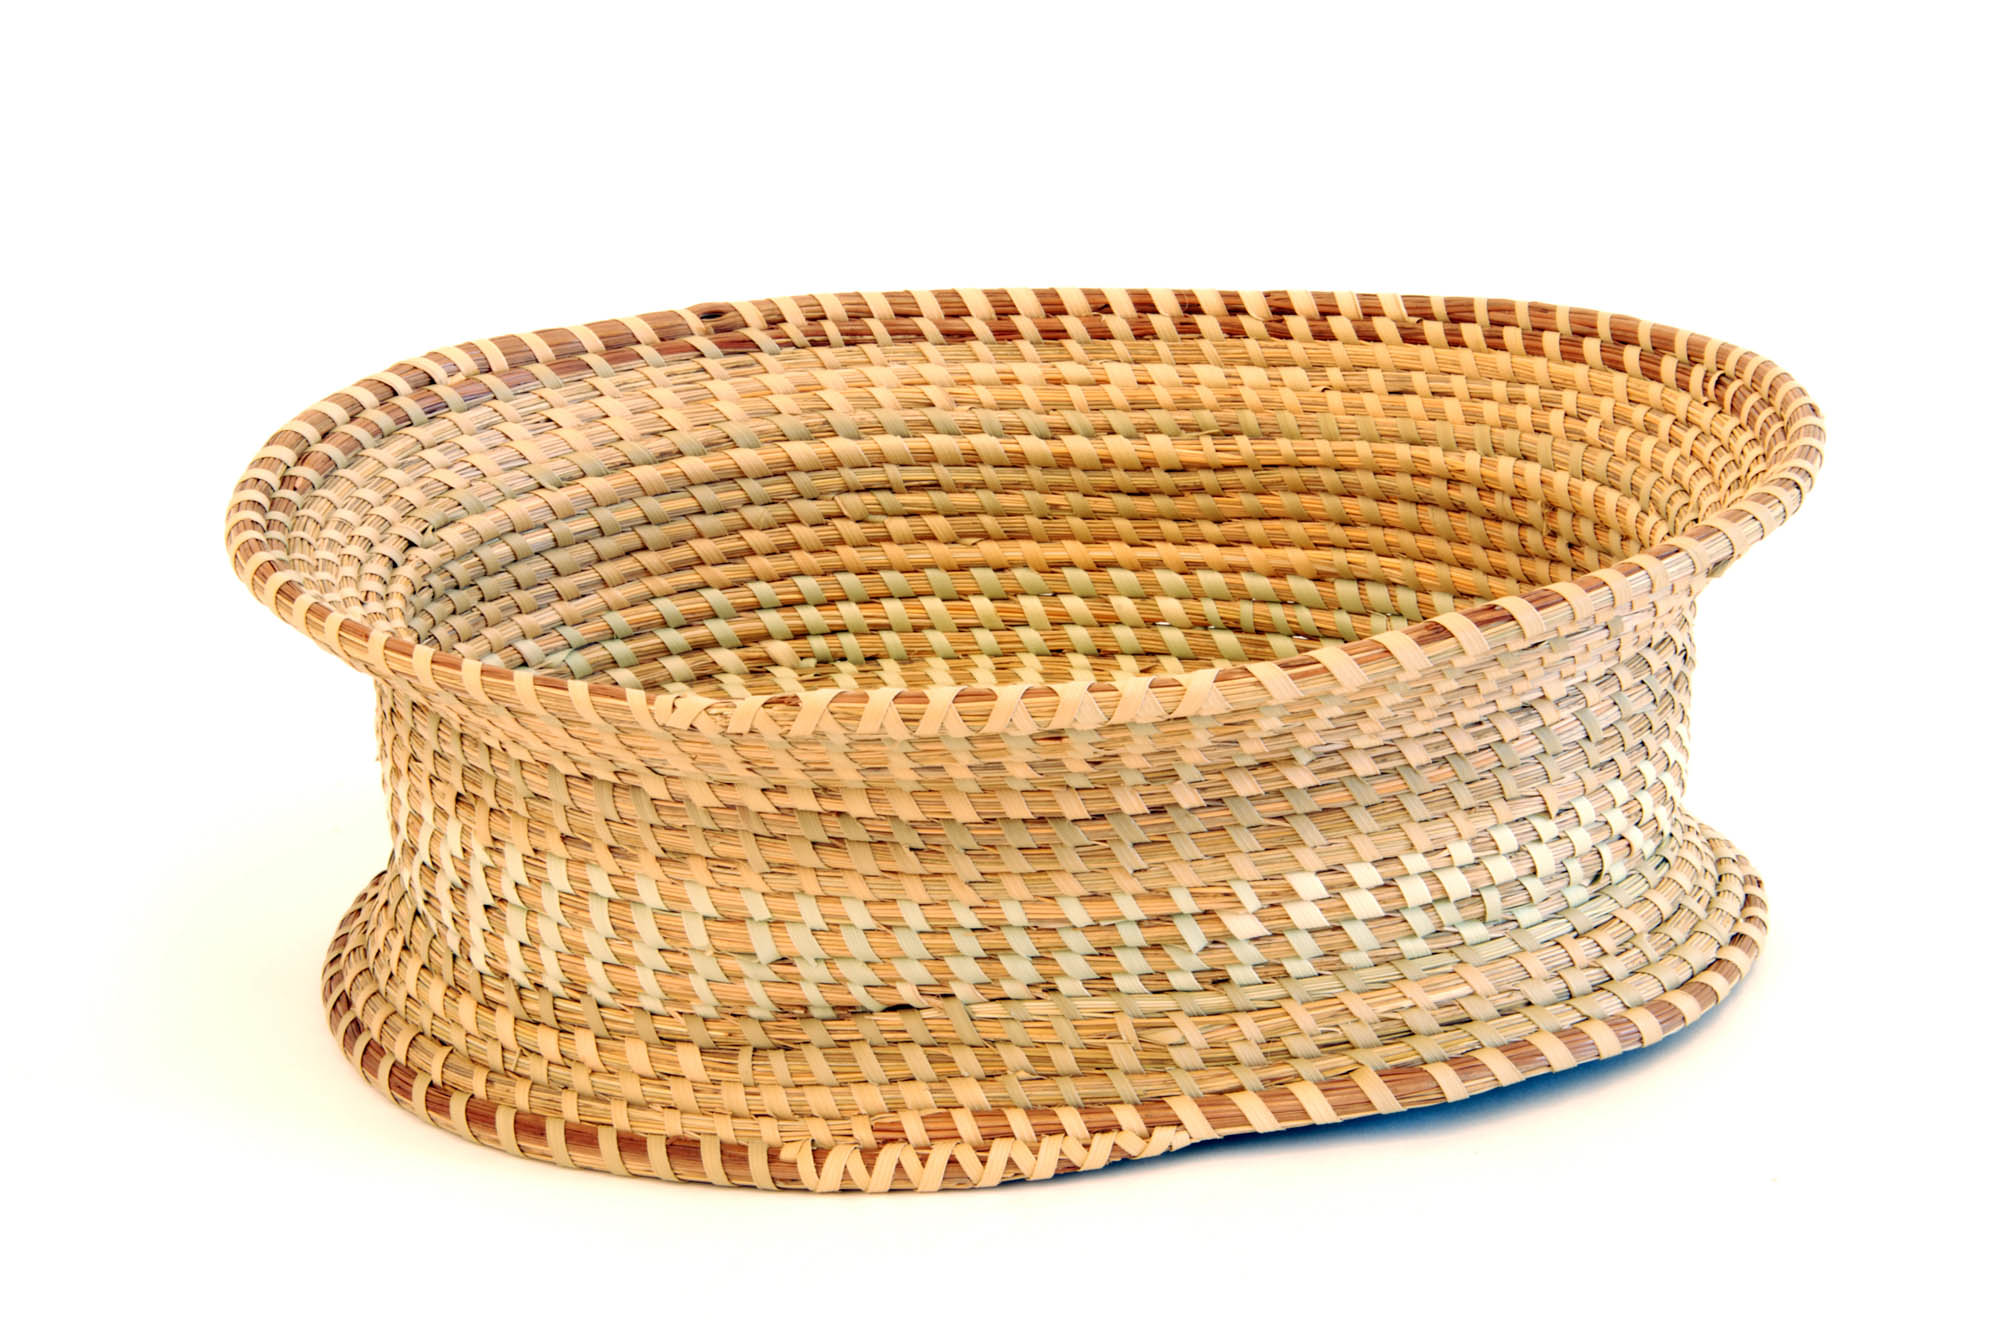 Oblong sweetgrass basket